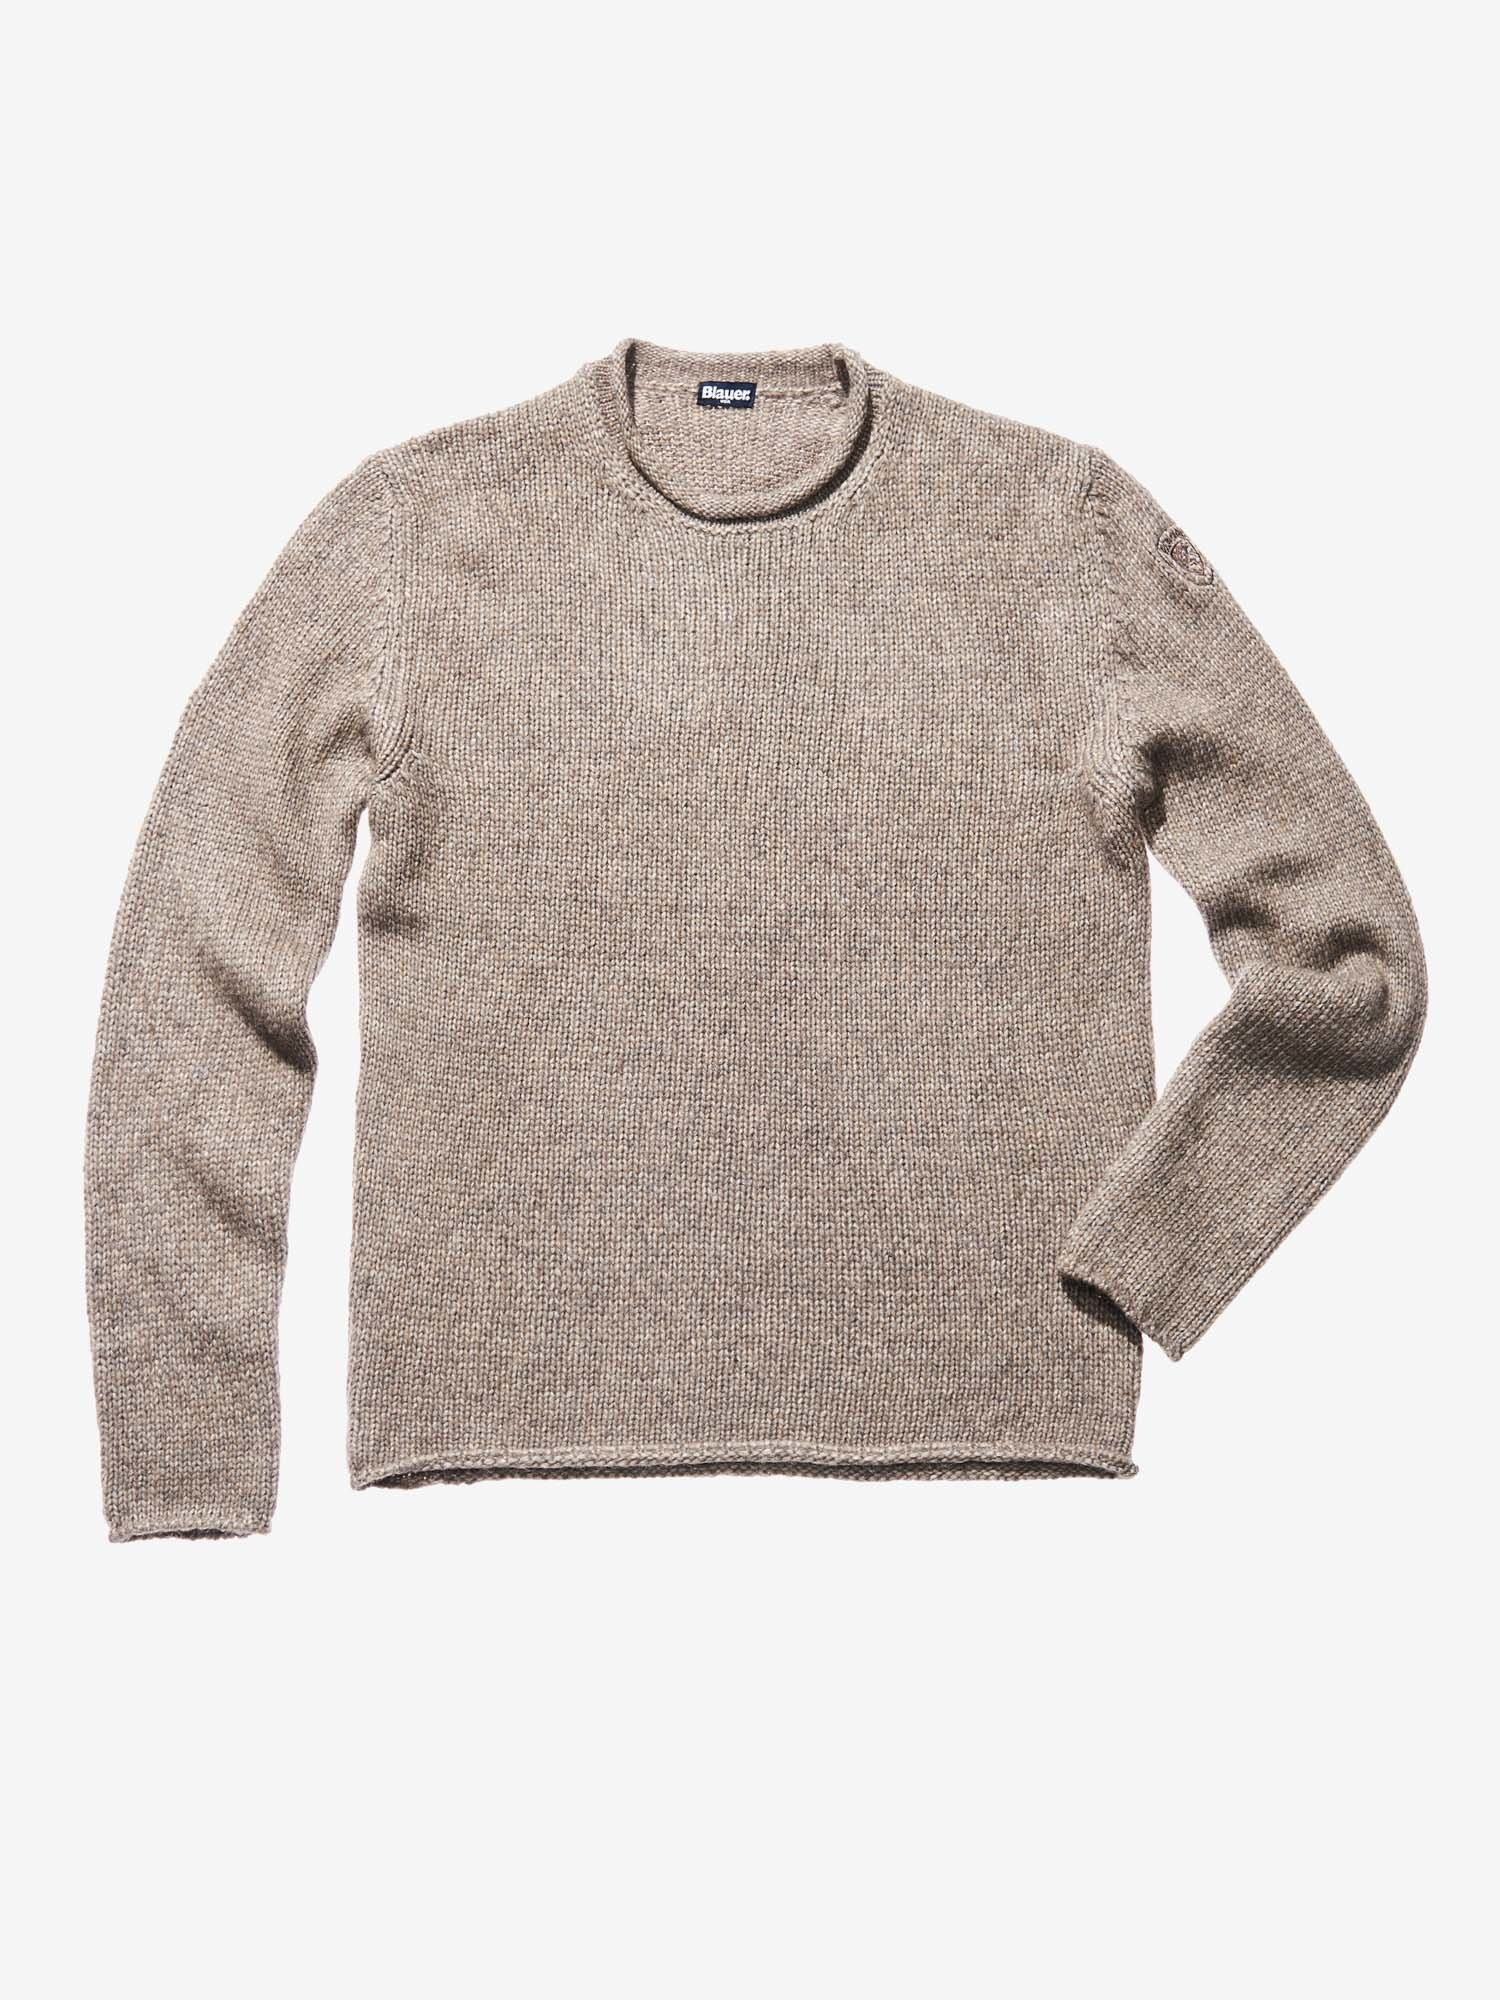 WOOL COTTON SWEATER - Blauer